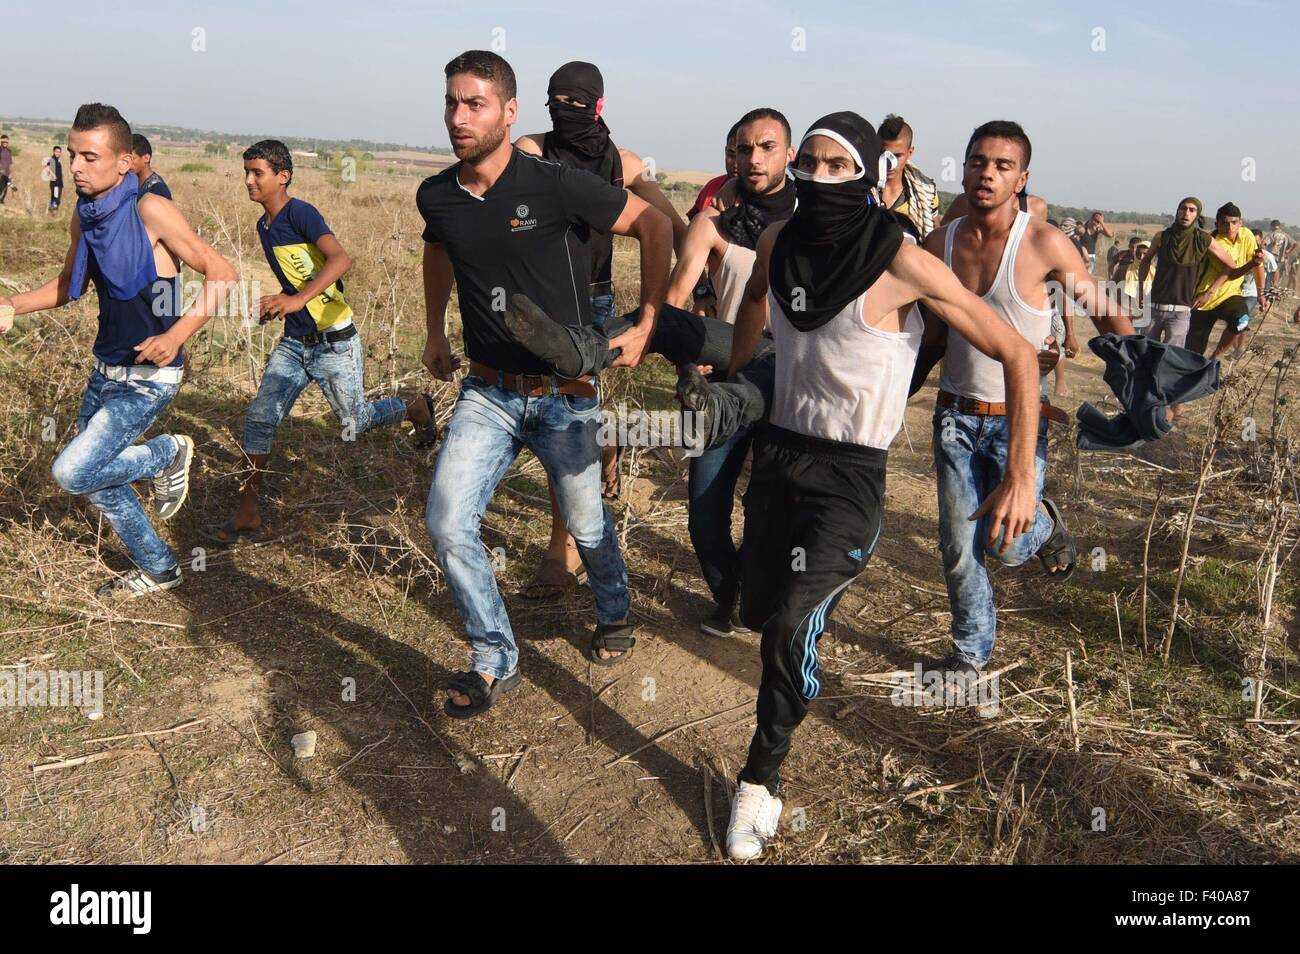 Gaza, Palestine. 13th Oct, 2015. A wounded Palestinian protester is evacuated after he was shot by Israeli troops - Stock Image